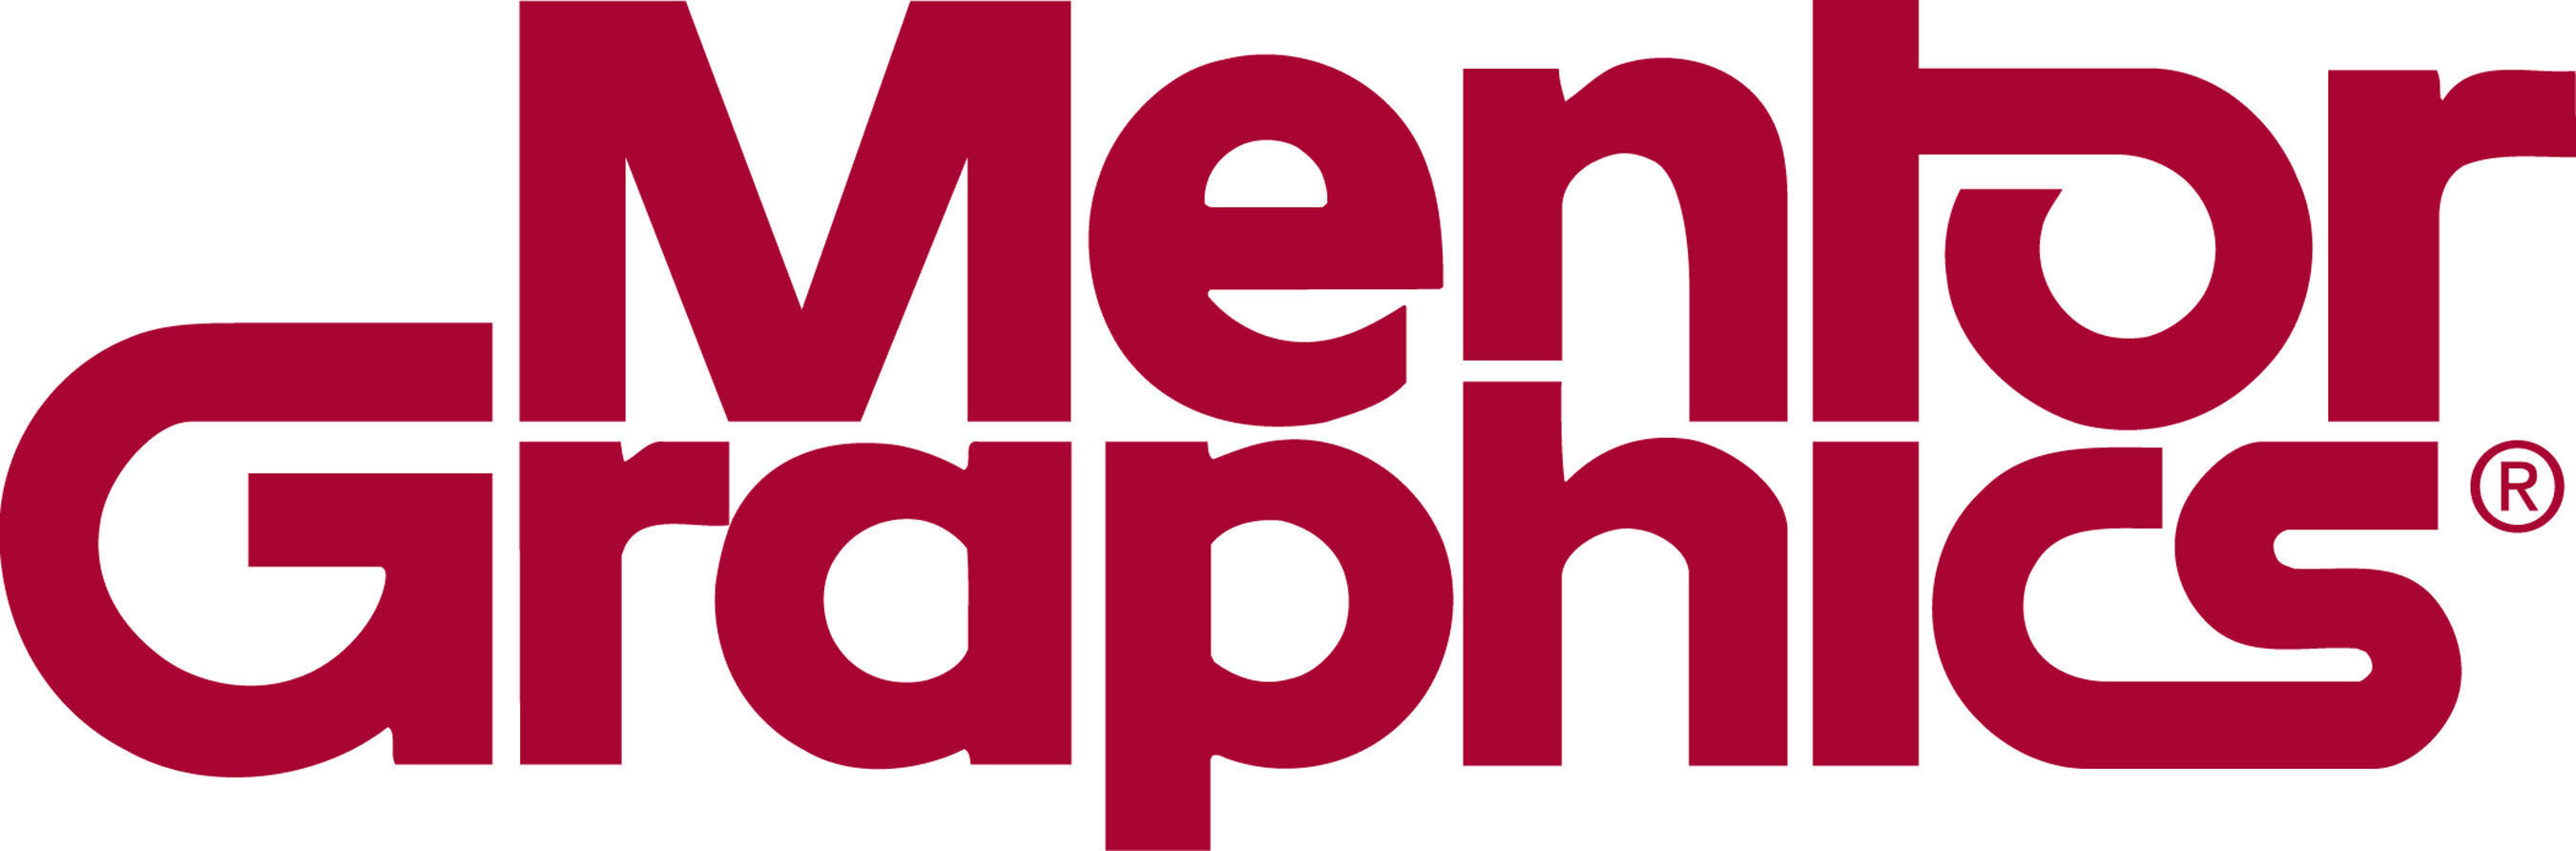 MENTOR GRAPHICS CORPORATION LOGO